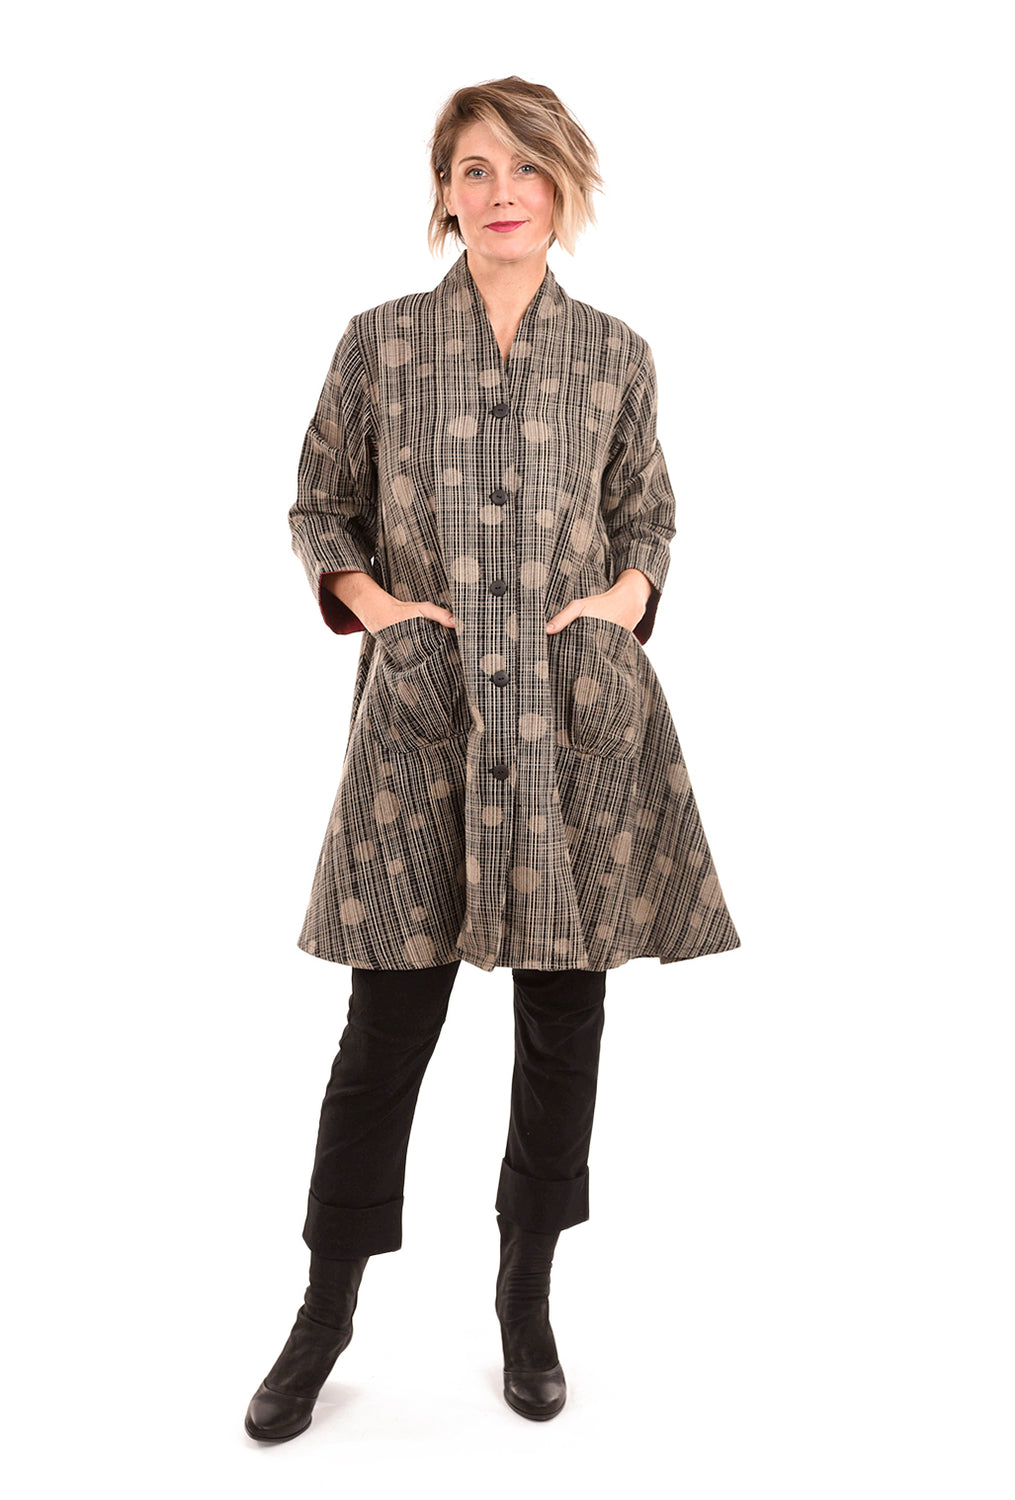 Mao Mam Mao Mam Roll Collar Coat, Black/Tan One Size Black